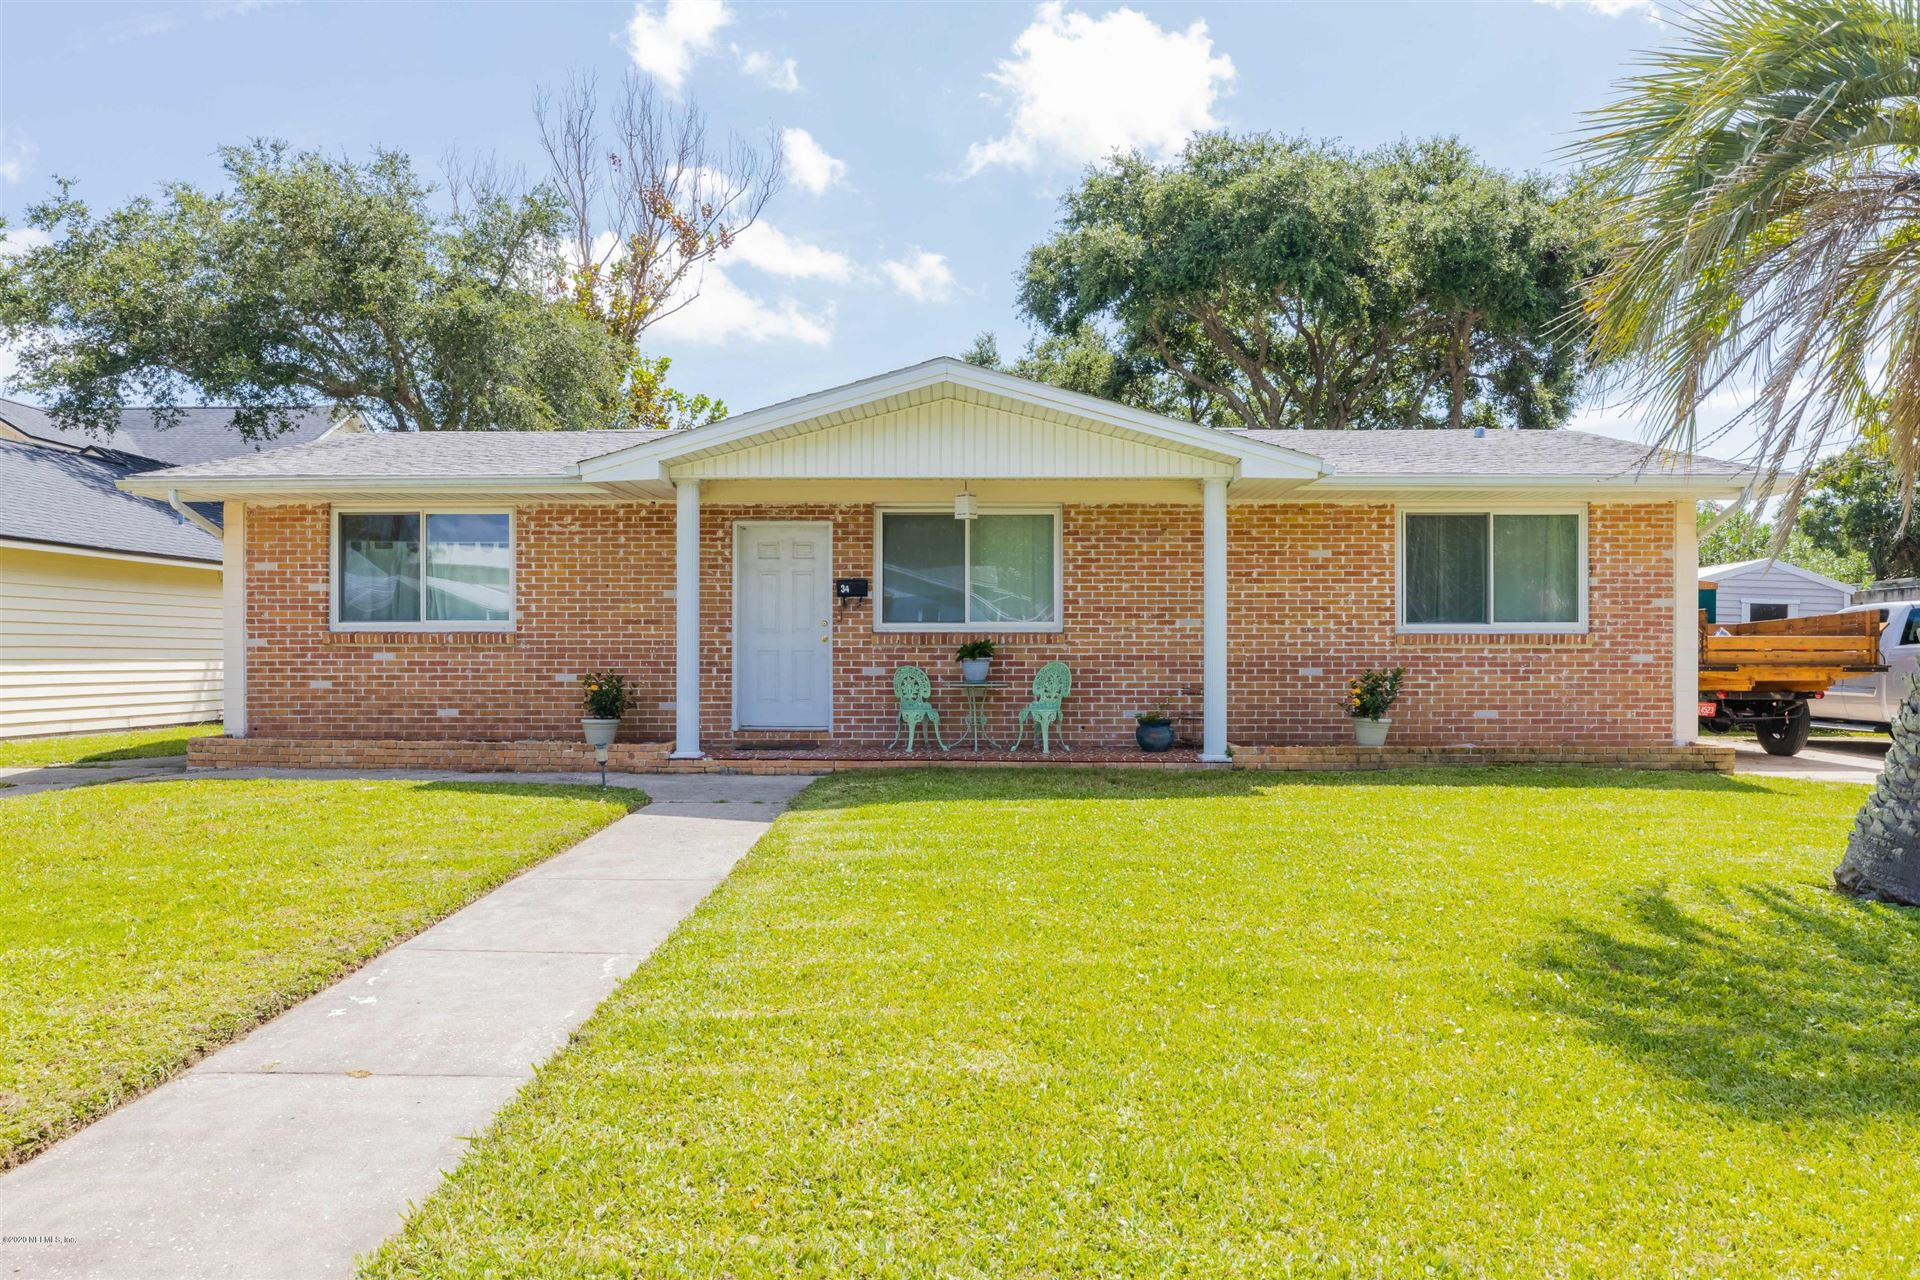 Photo for 34 COLONY ST, ST AUGUSTINE, FL 32084 (MLS # 1066566)